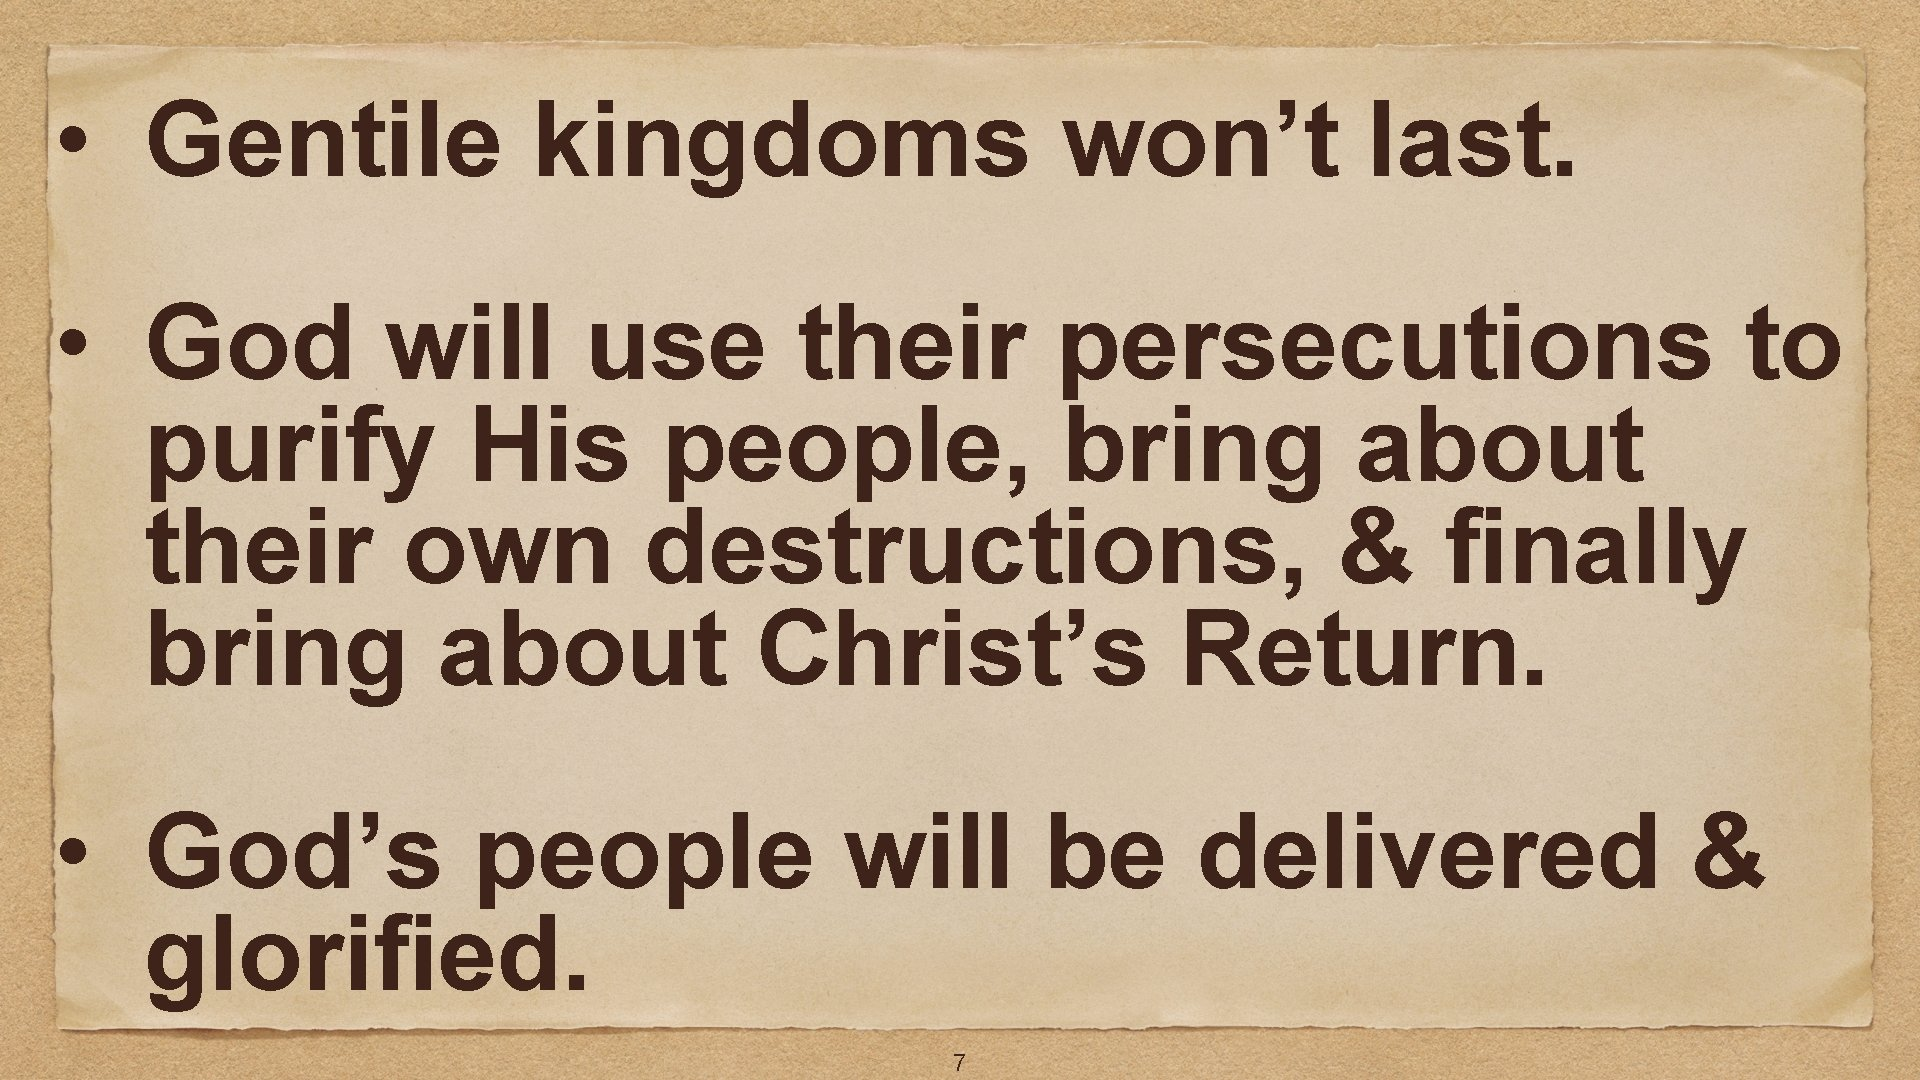 • Gentile kingdoms won't last. • God will use their persecutions to purify